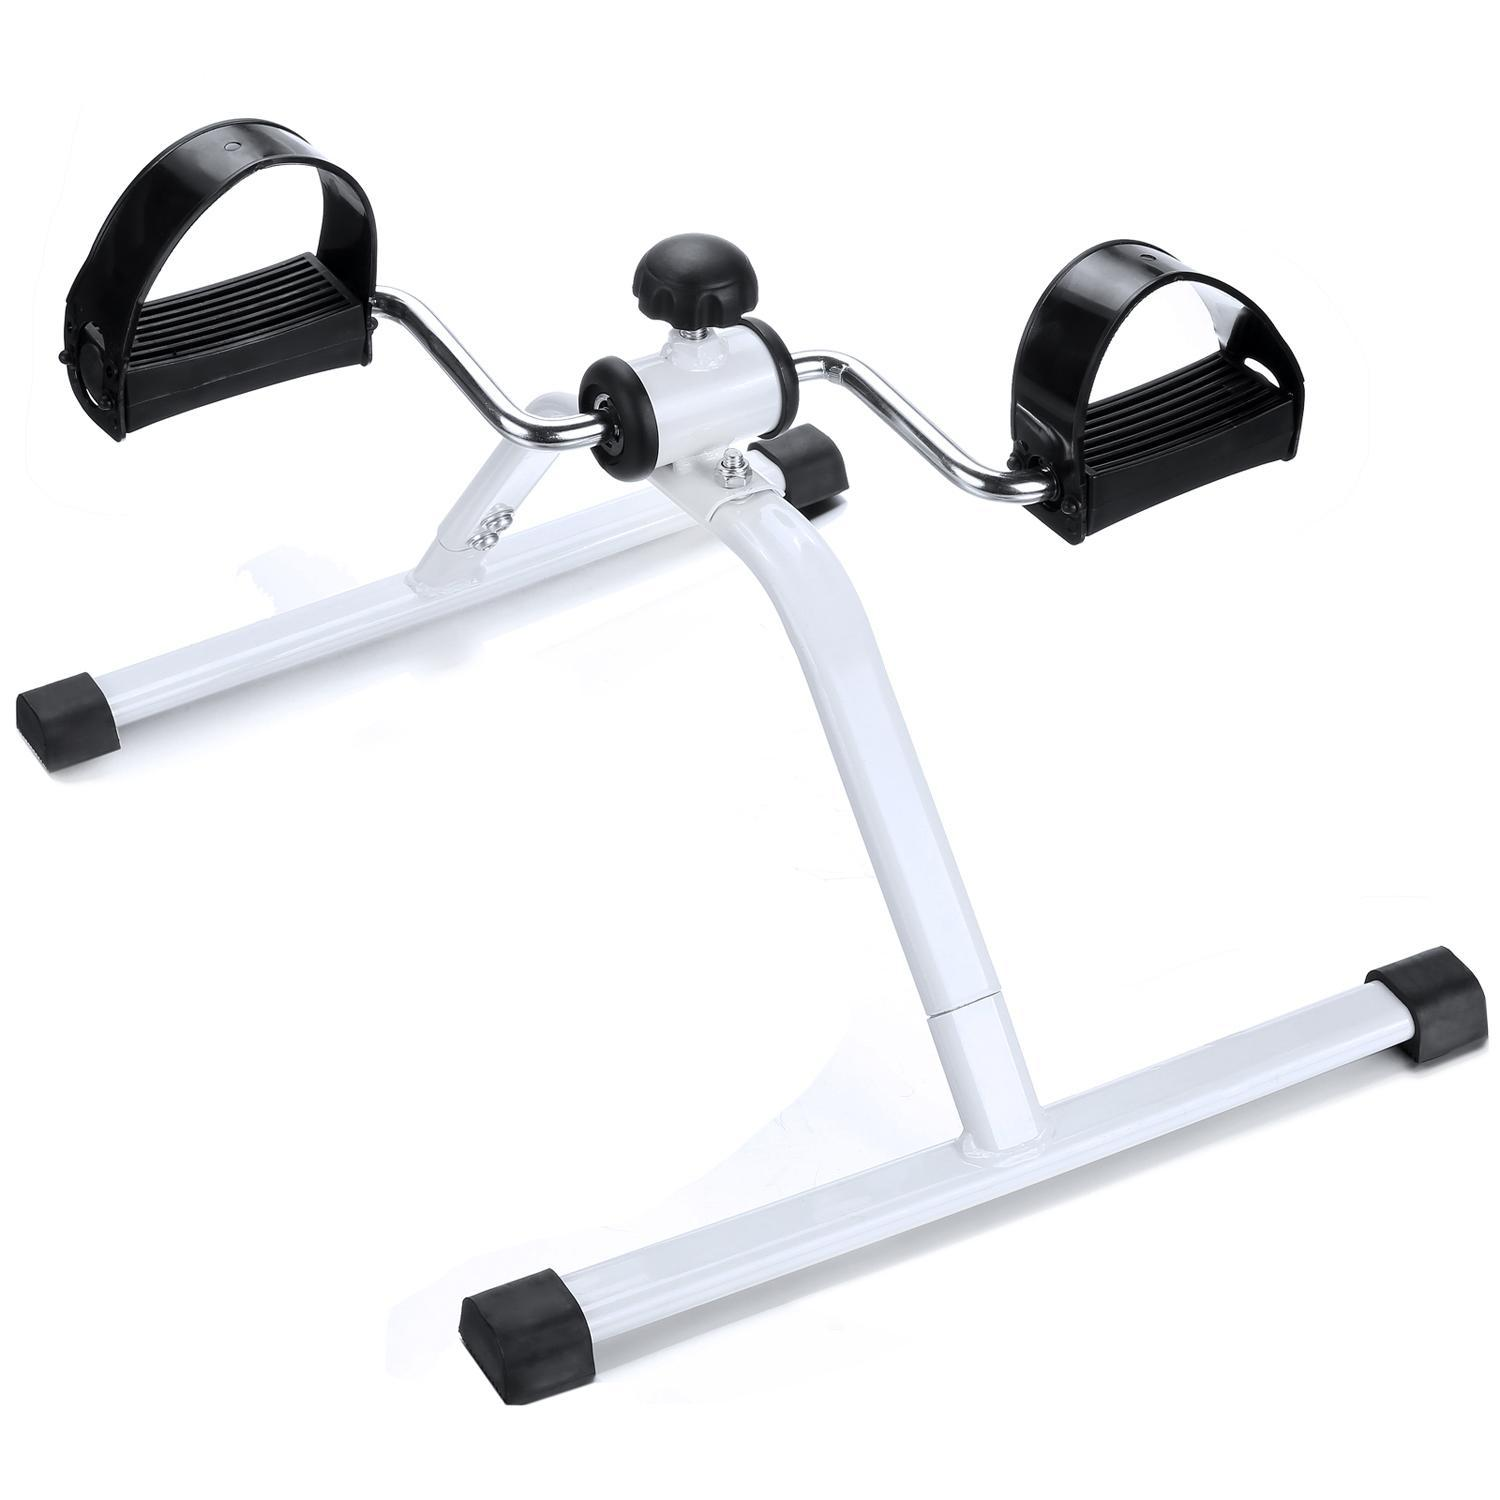 Clearance!Mini Pedal Exerciser Arm Leg Exercise Machine Physical Therapy Pedal Cycle Exercise Bike RYSTE